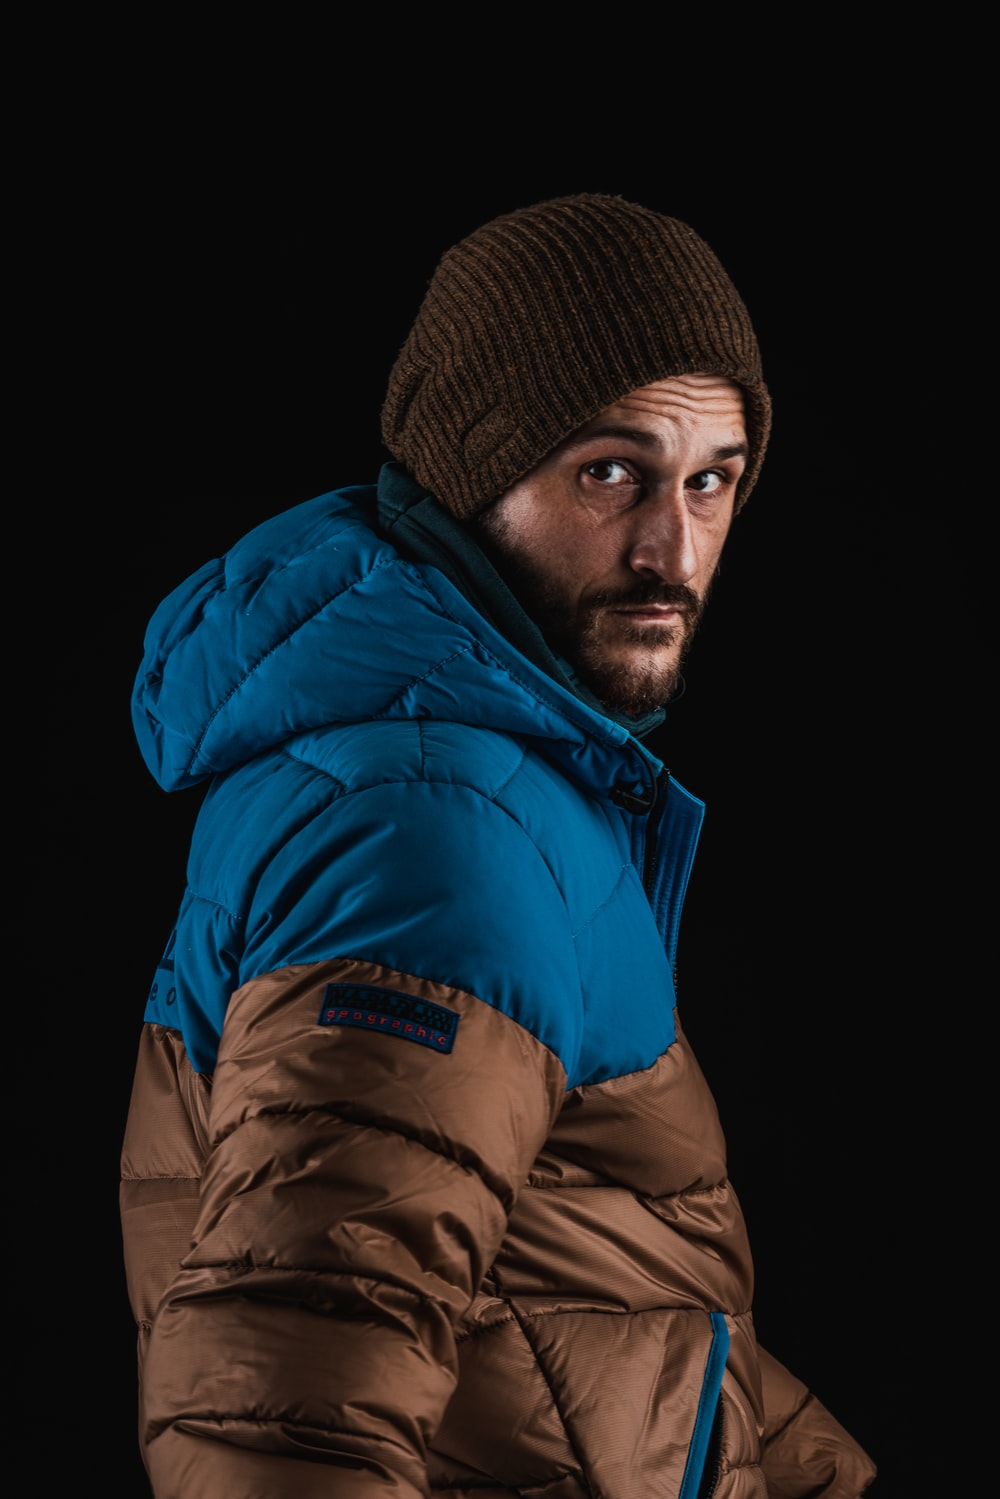 man in blue bubble jacket and brown knit cap